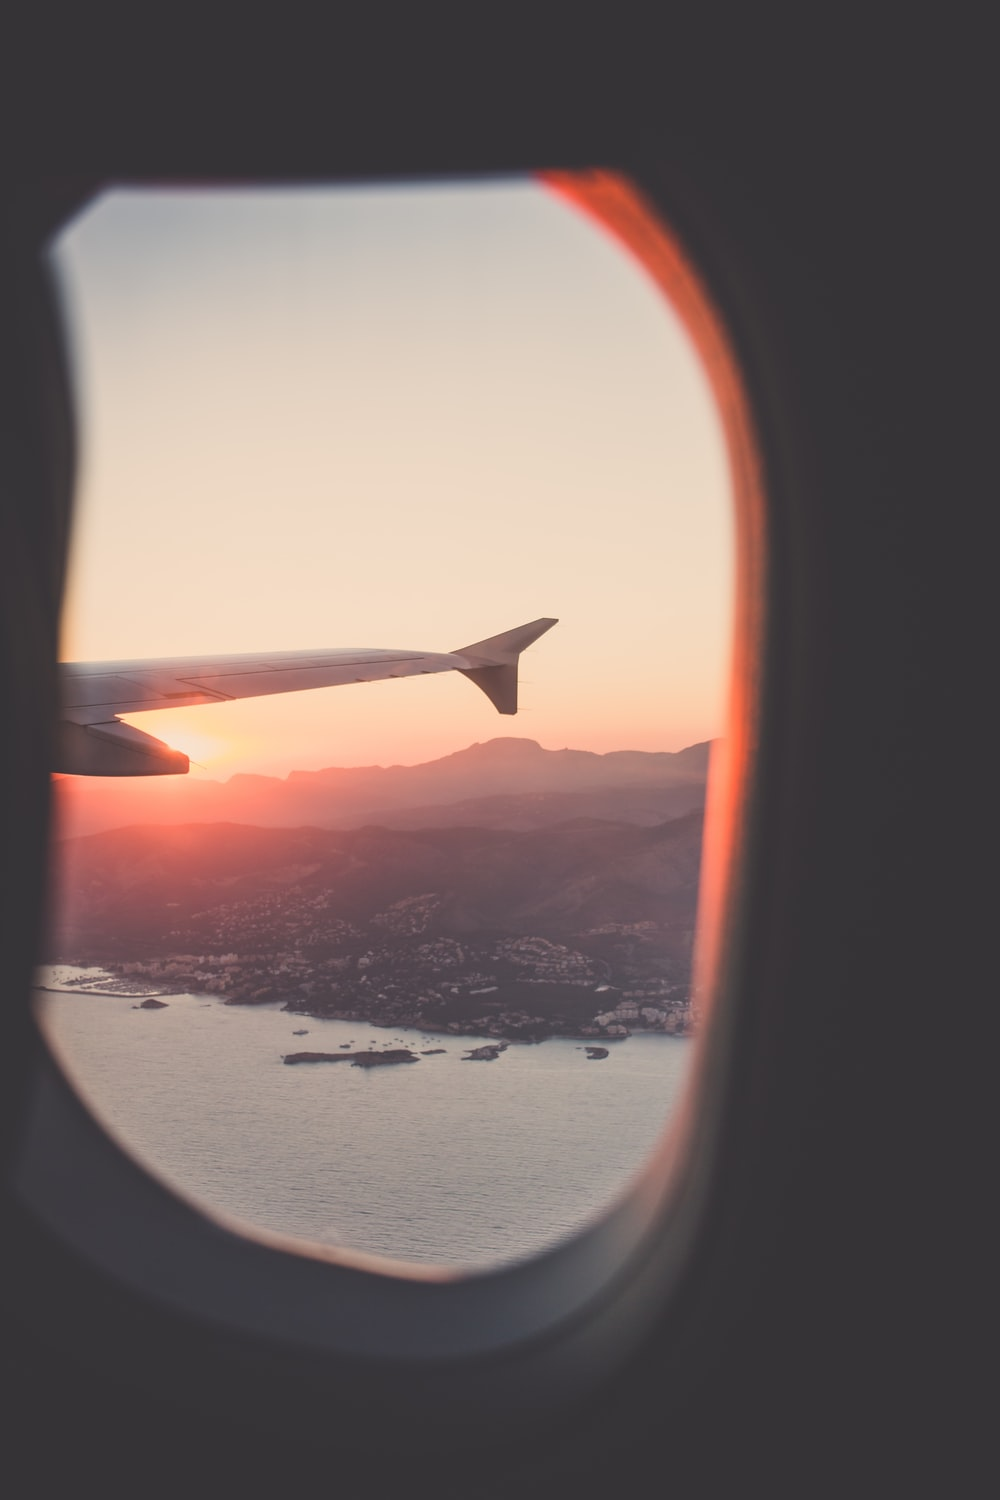 Remarkable 27 Airplane Window Pictures Download Free Images On Unsplash Ocoug Best Dining Table And Chair Ideas Images Ocougorg